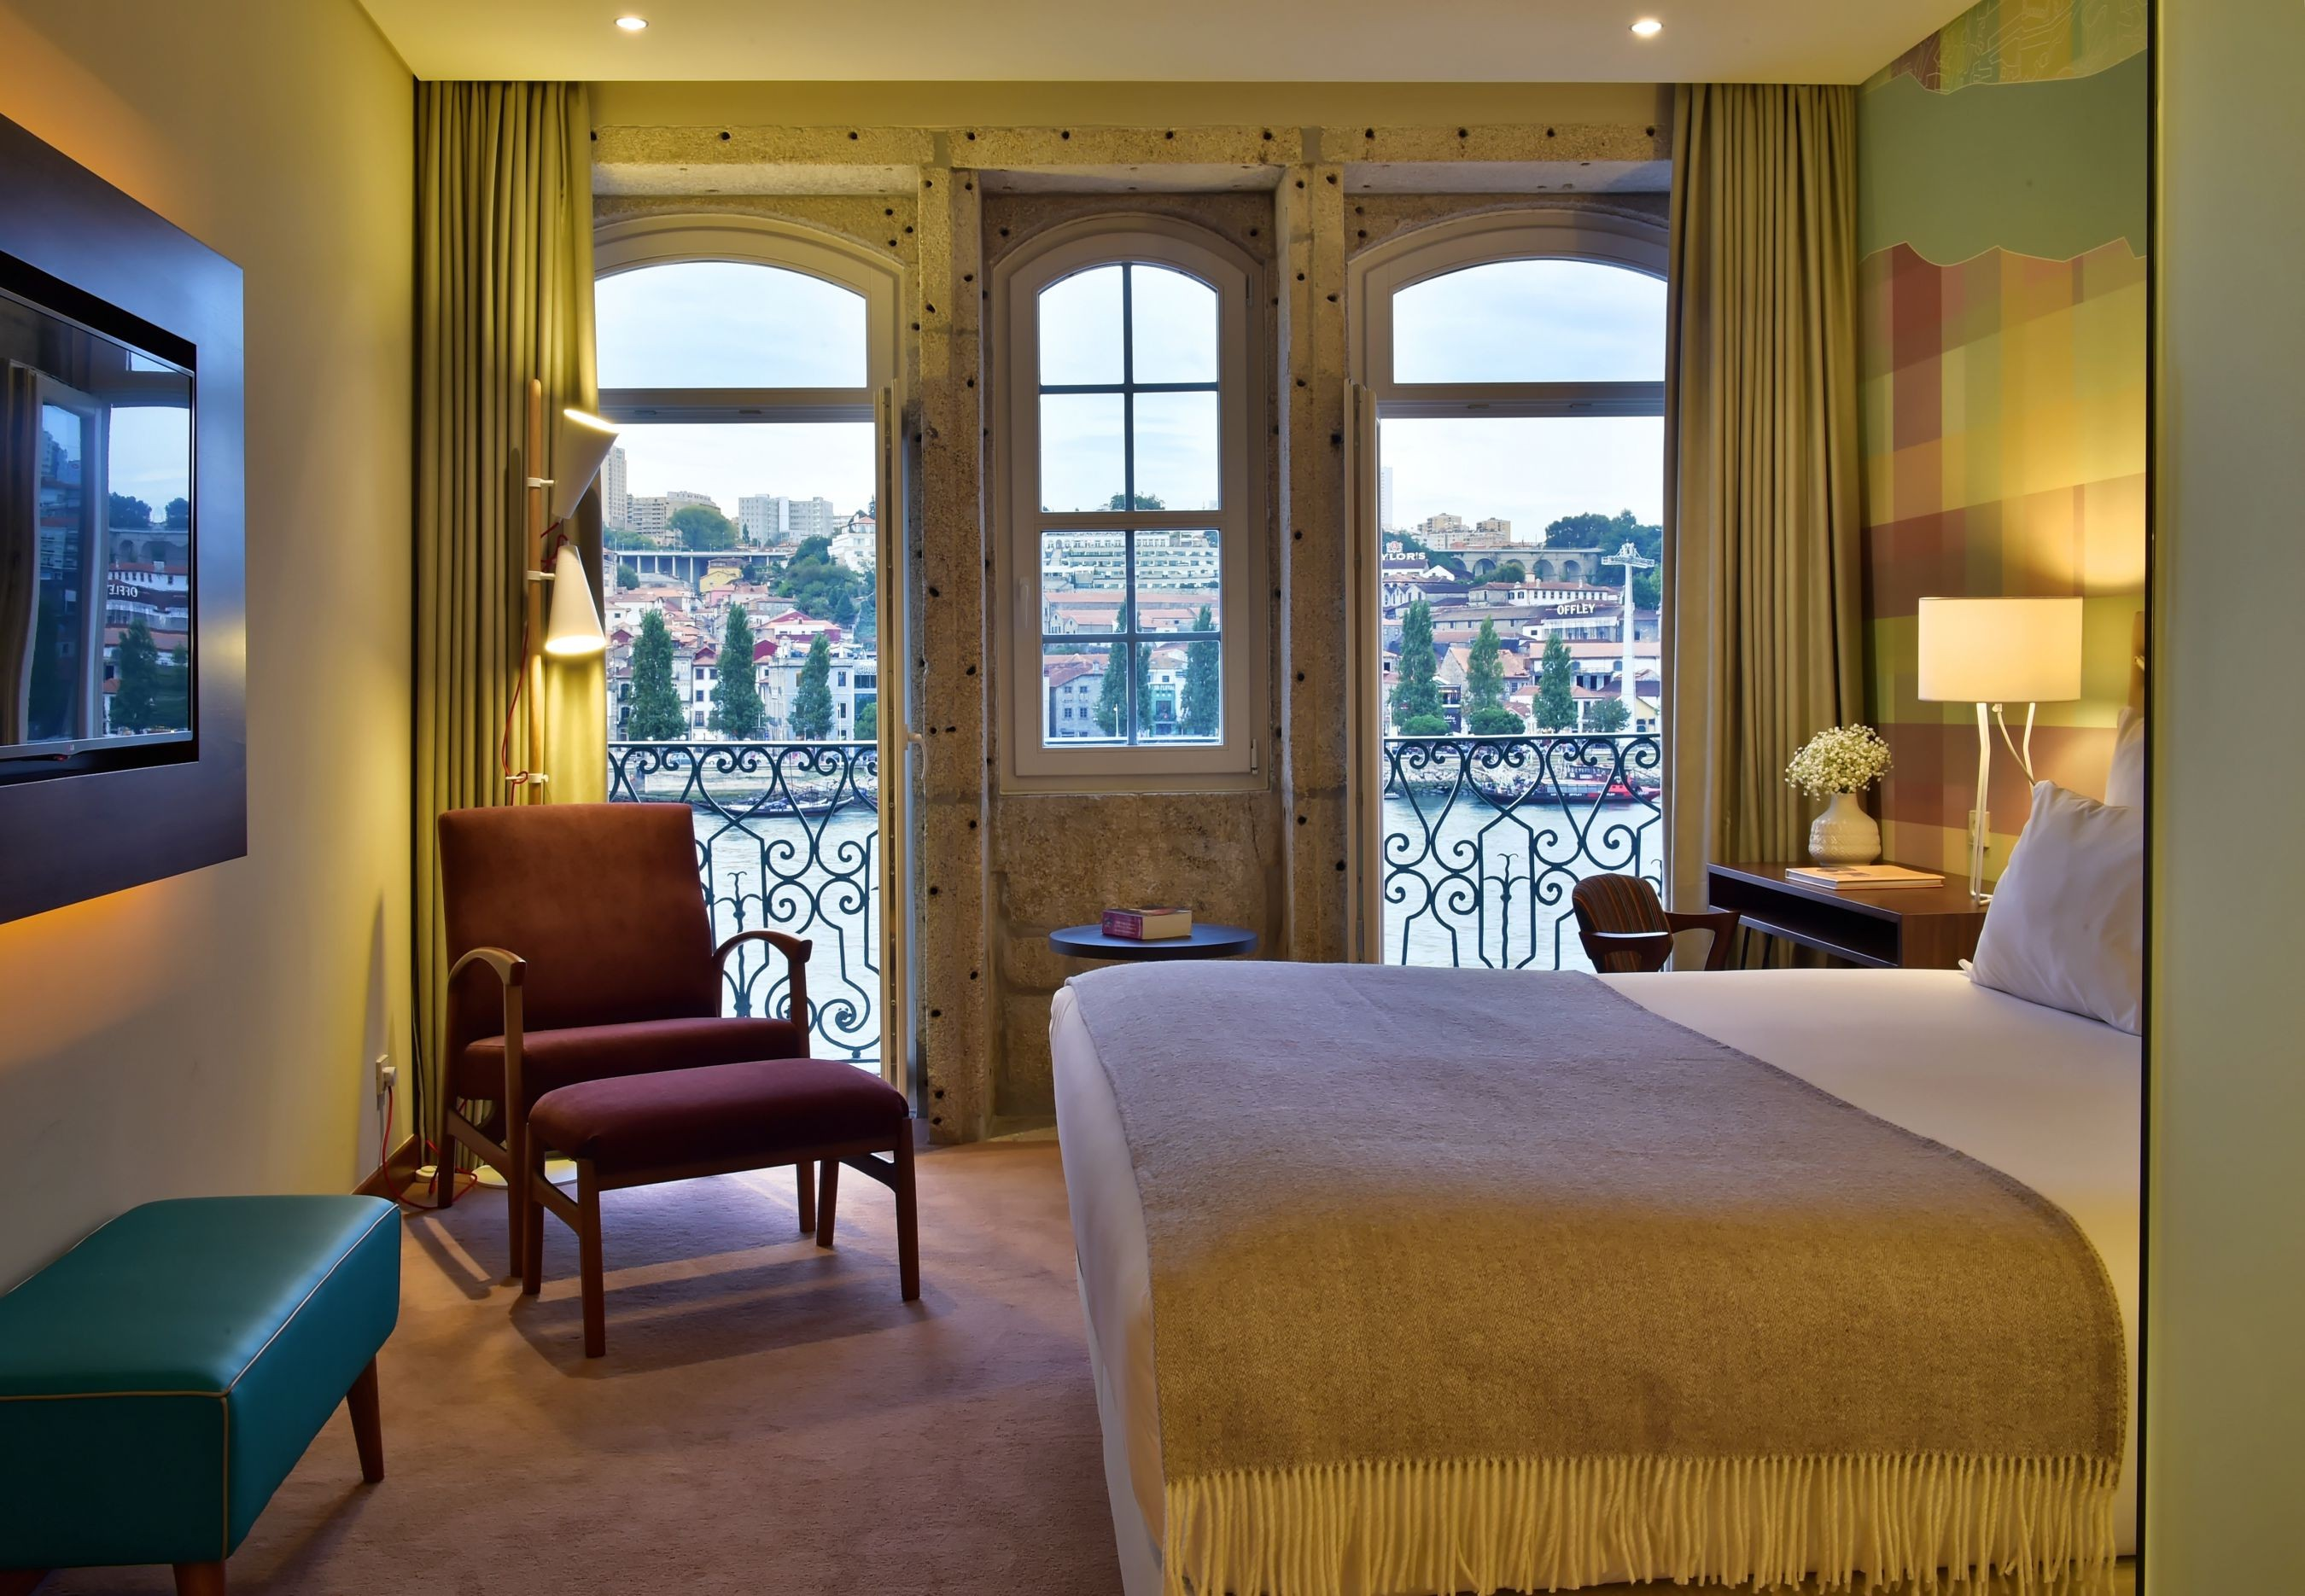 5 1 amazing hotel beds with stunning views hotelier academy. Black Bedroom Furniture Sets. Home Design Ideas